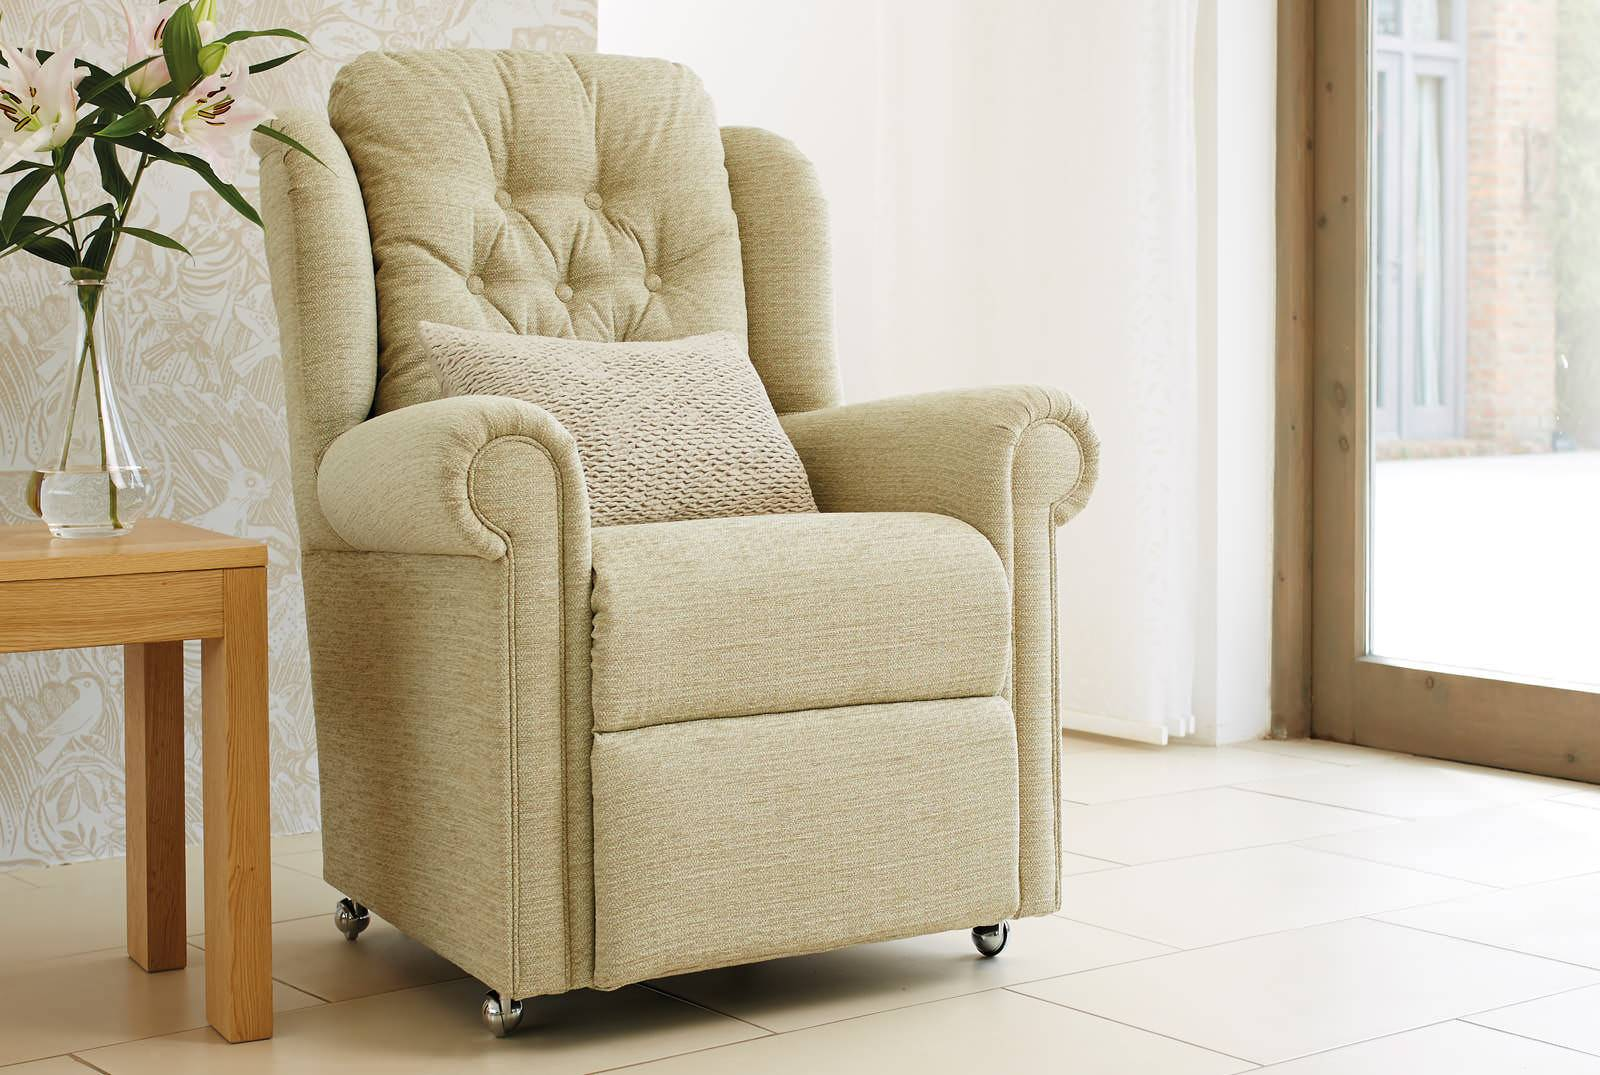 Hampton Relax Comfort Chair in Vienna Fennel